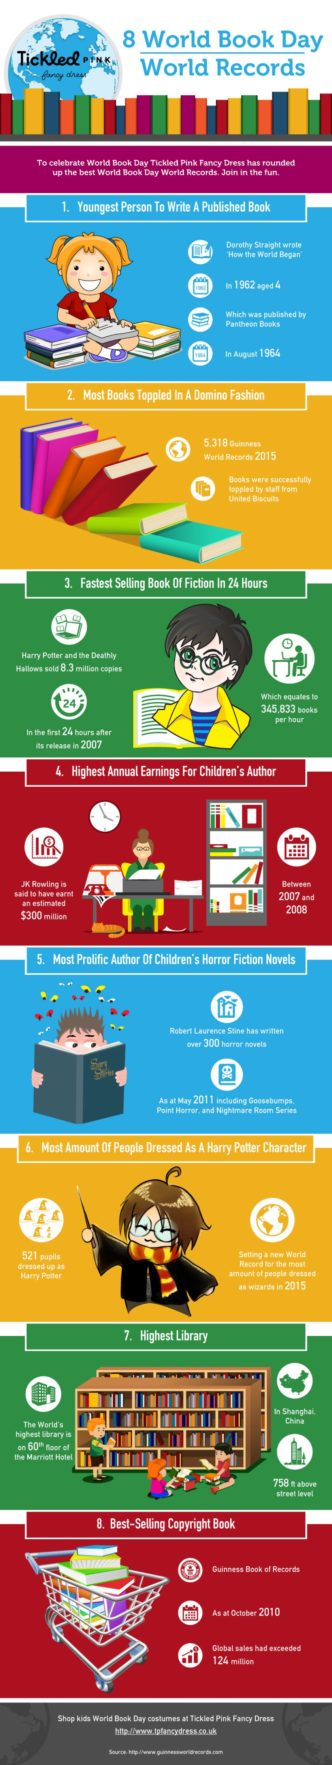 Guinness world records related to books and reading #infographic